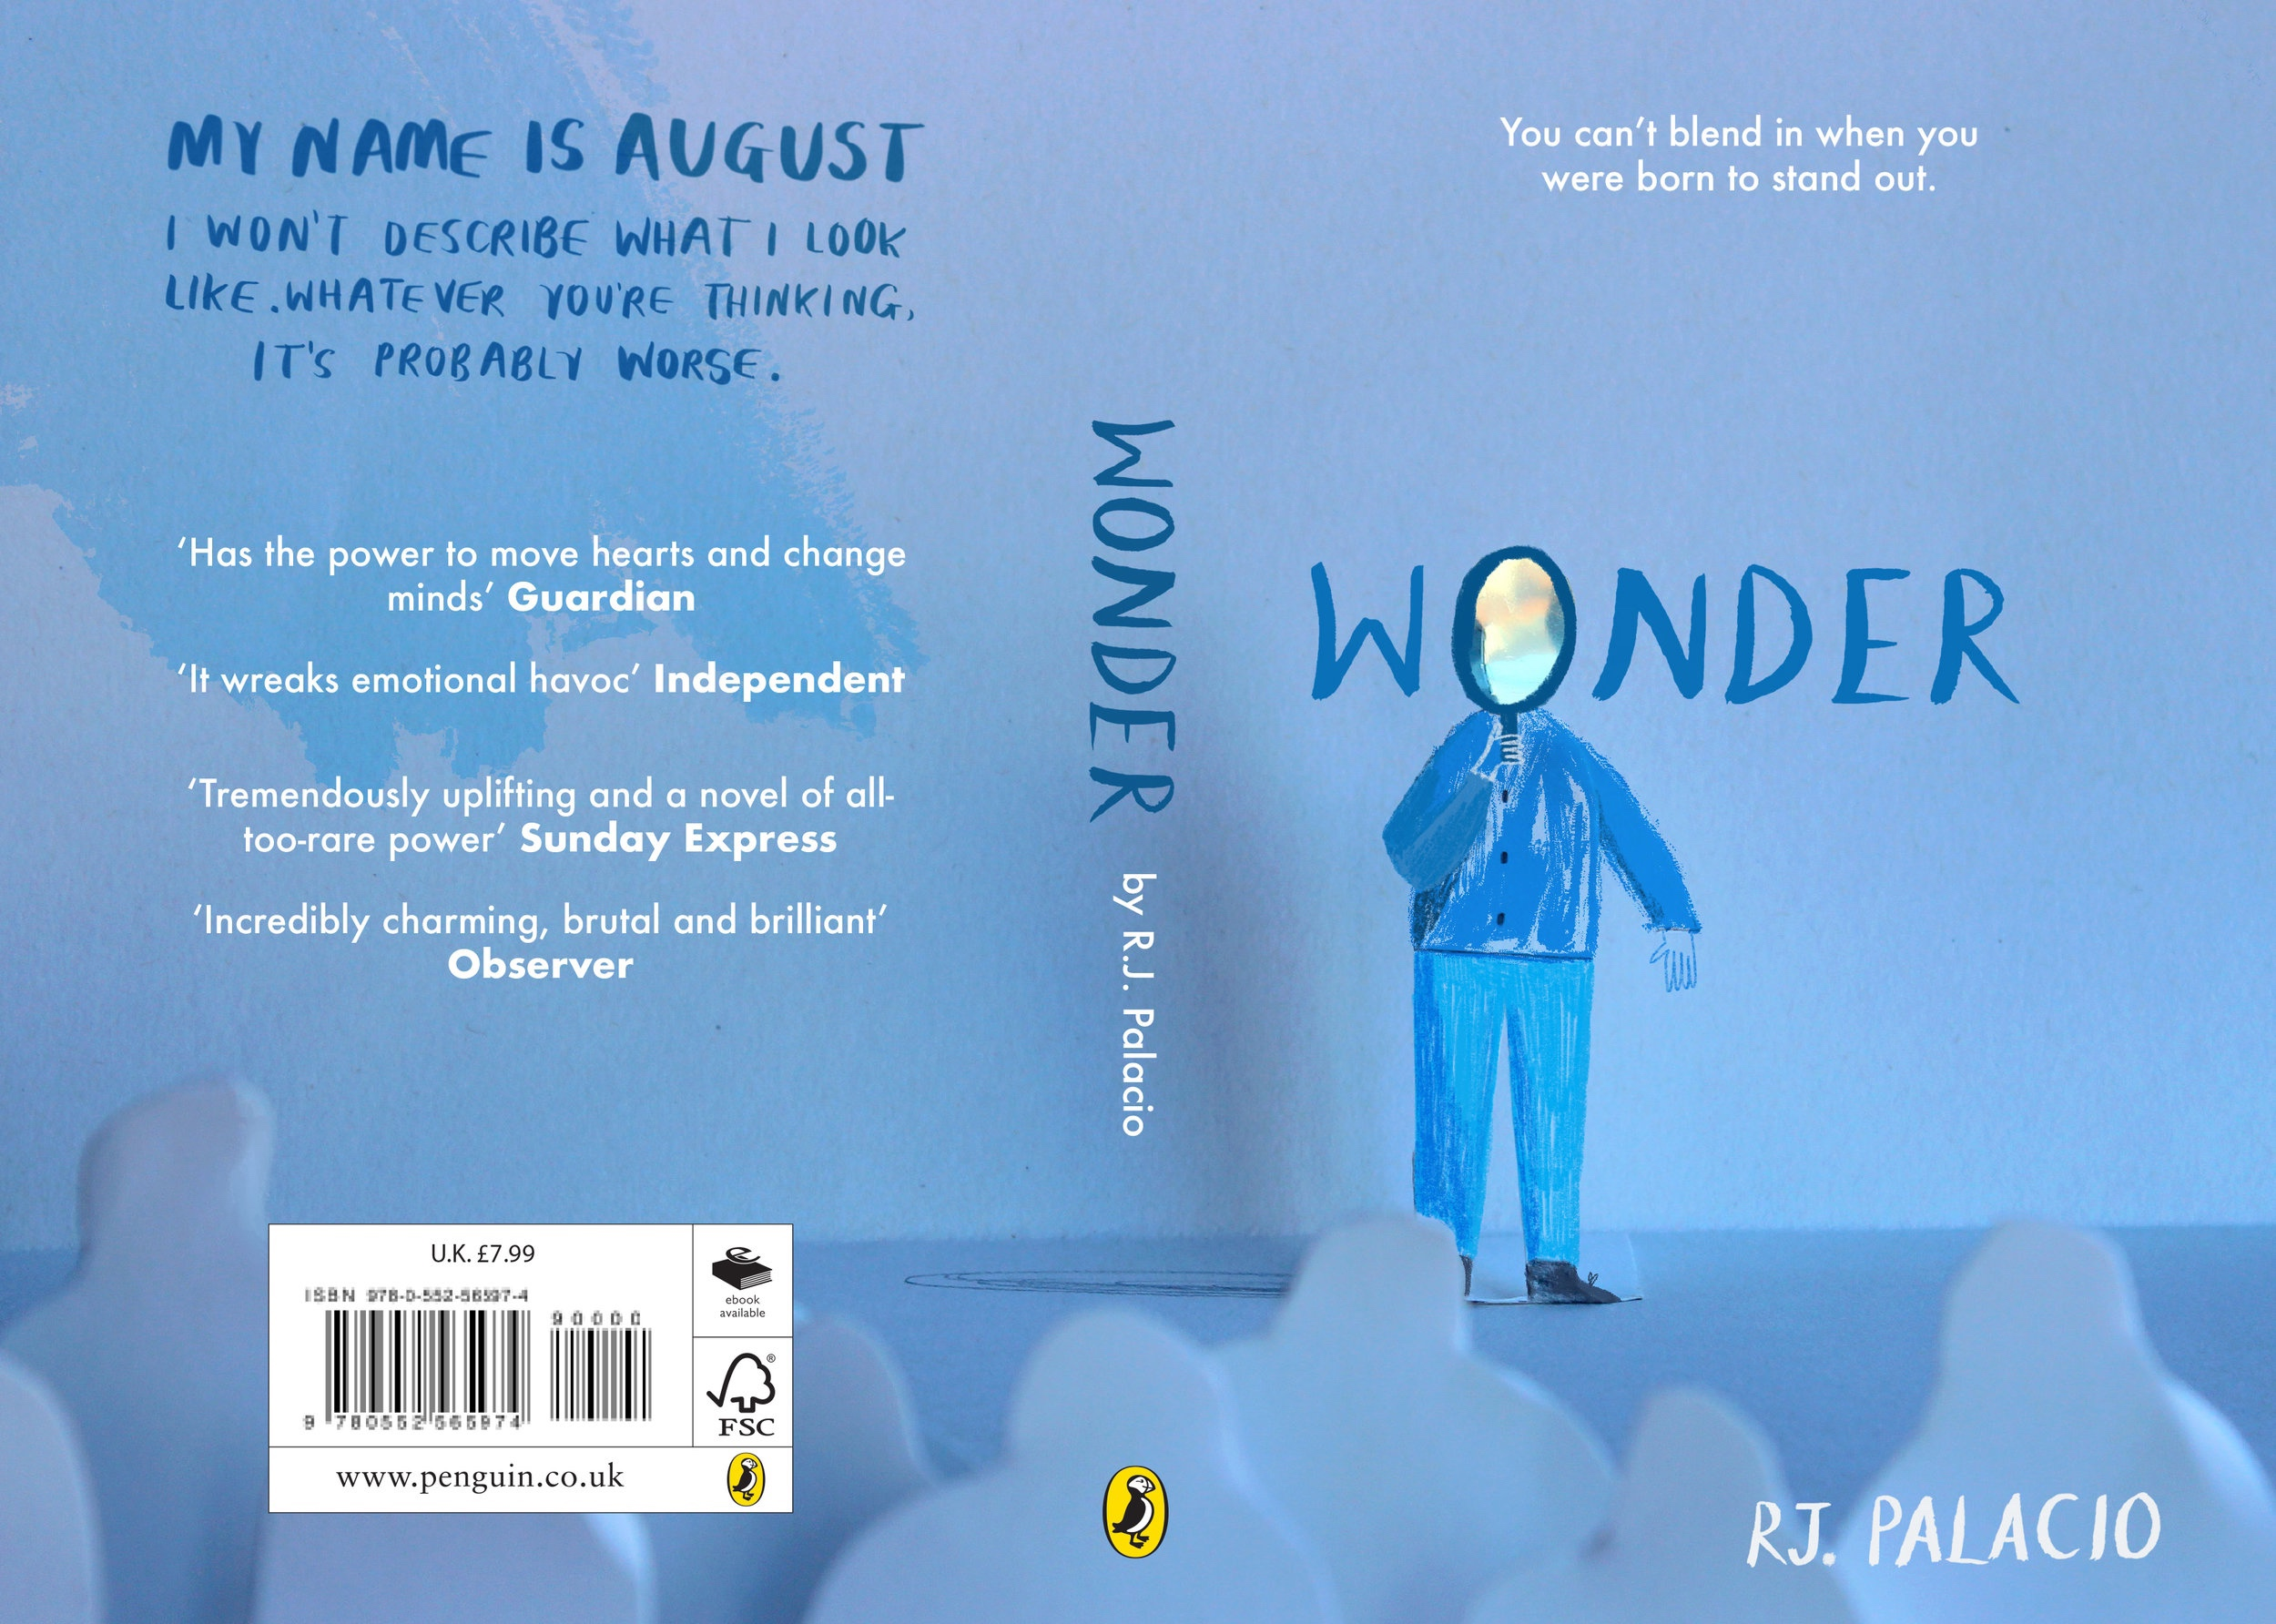 Redesigned book cover of Wonder by R.J.Palacio for the Penguin Student Design Awards 2019.